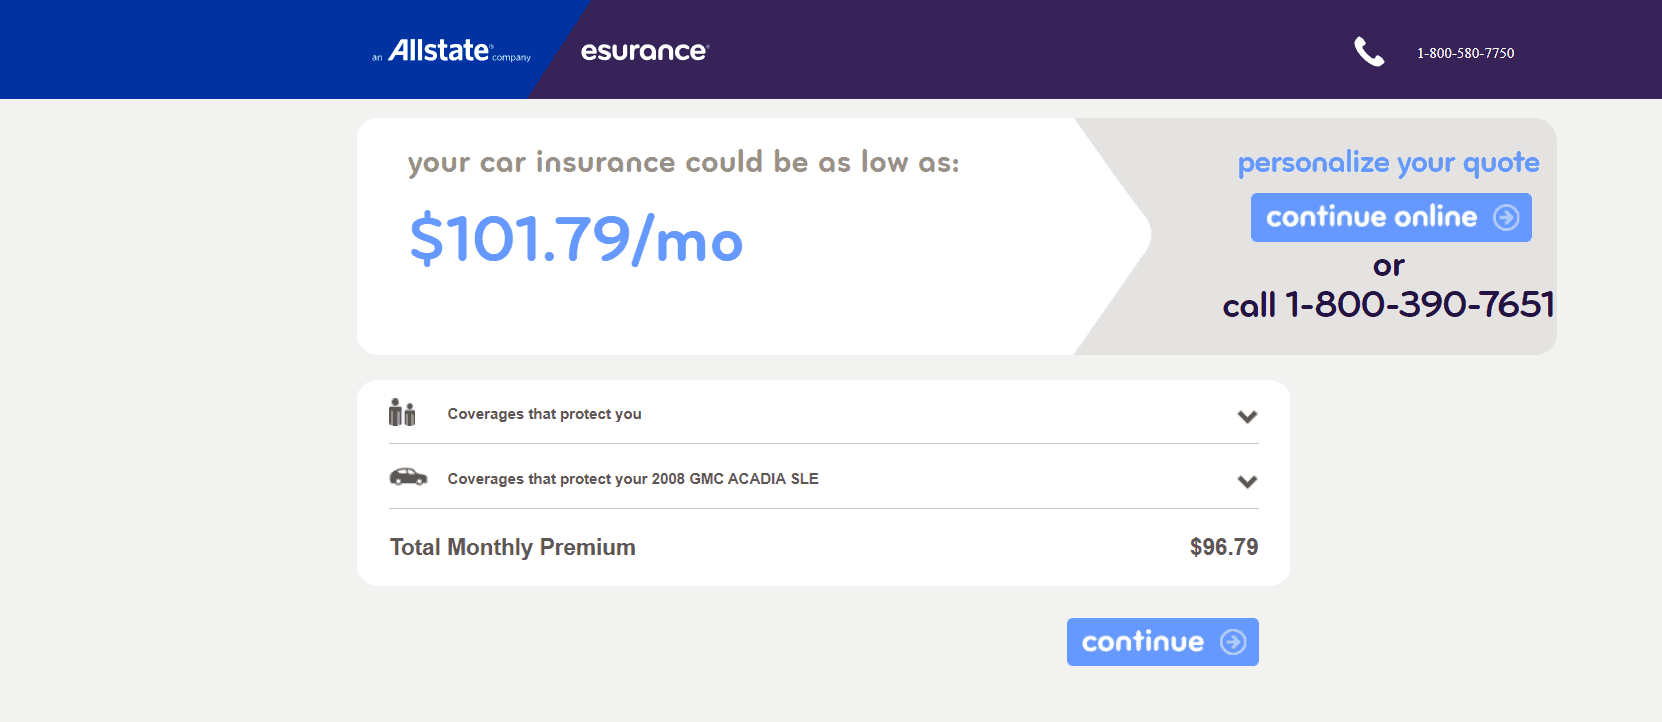 Esurance's page after clicking their ad